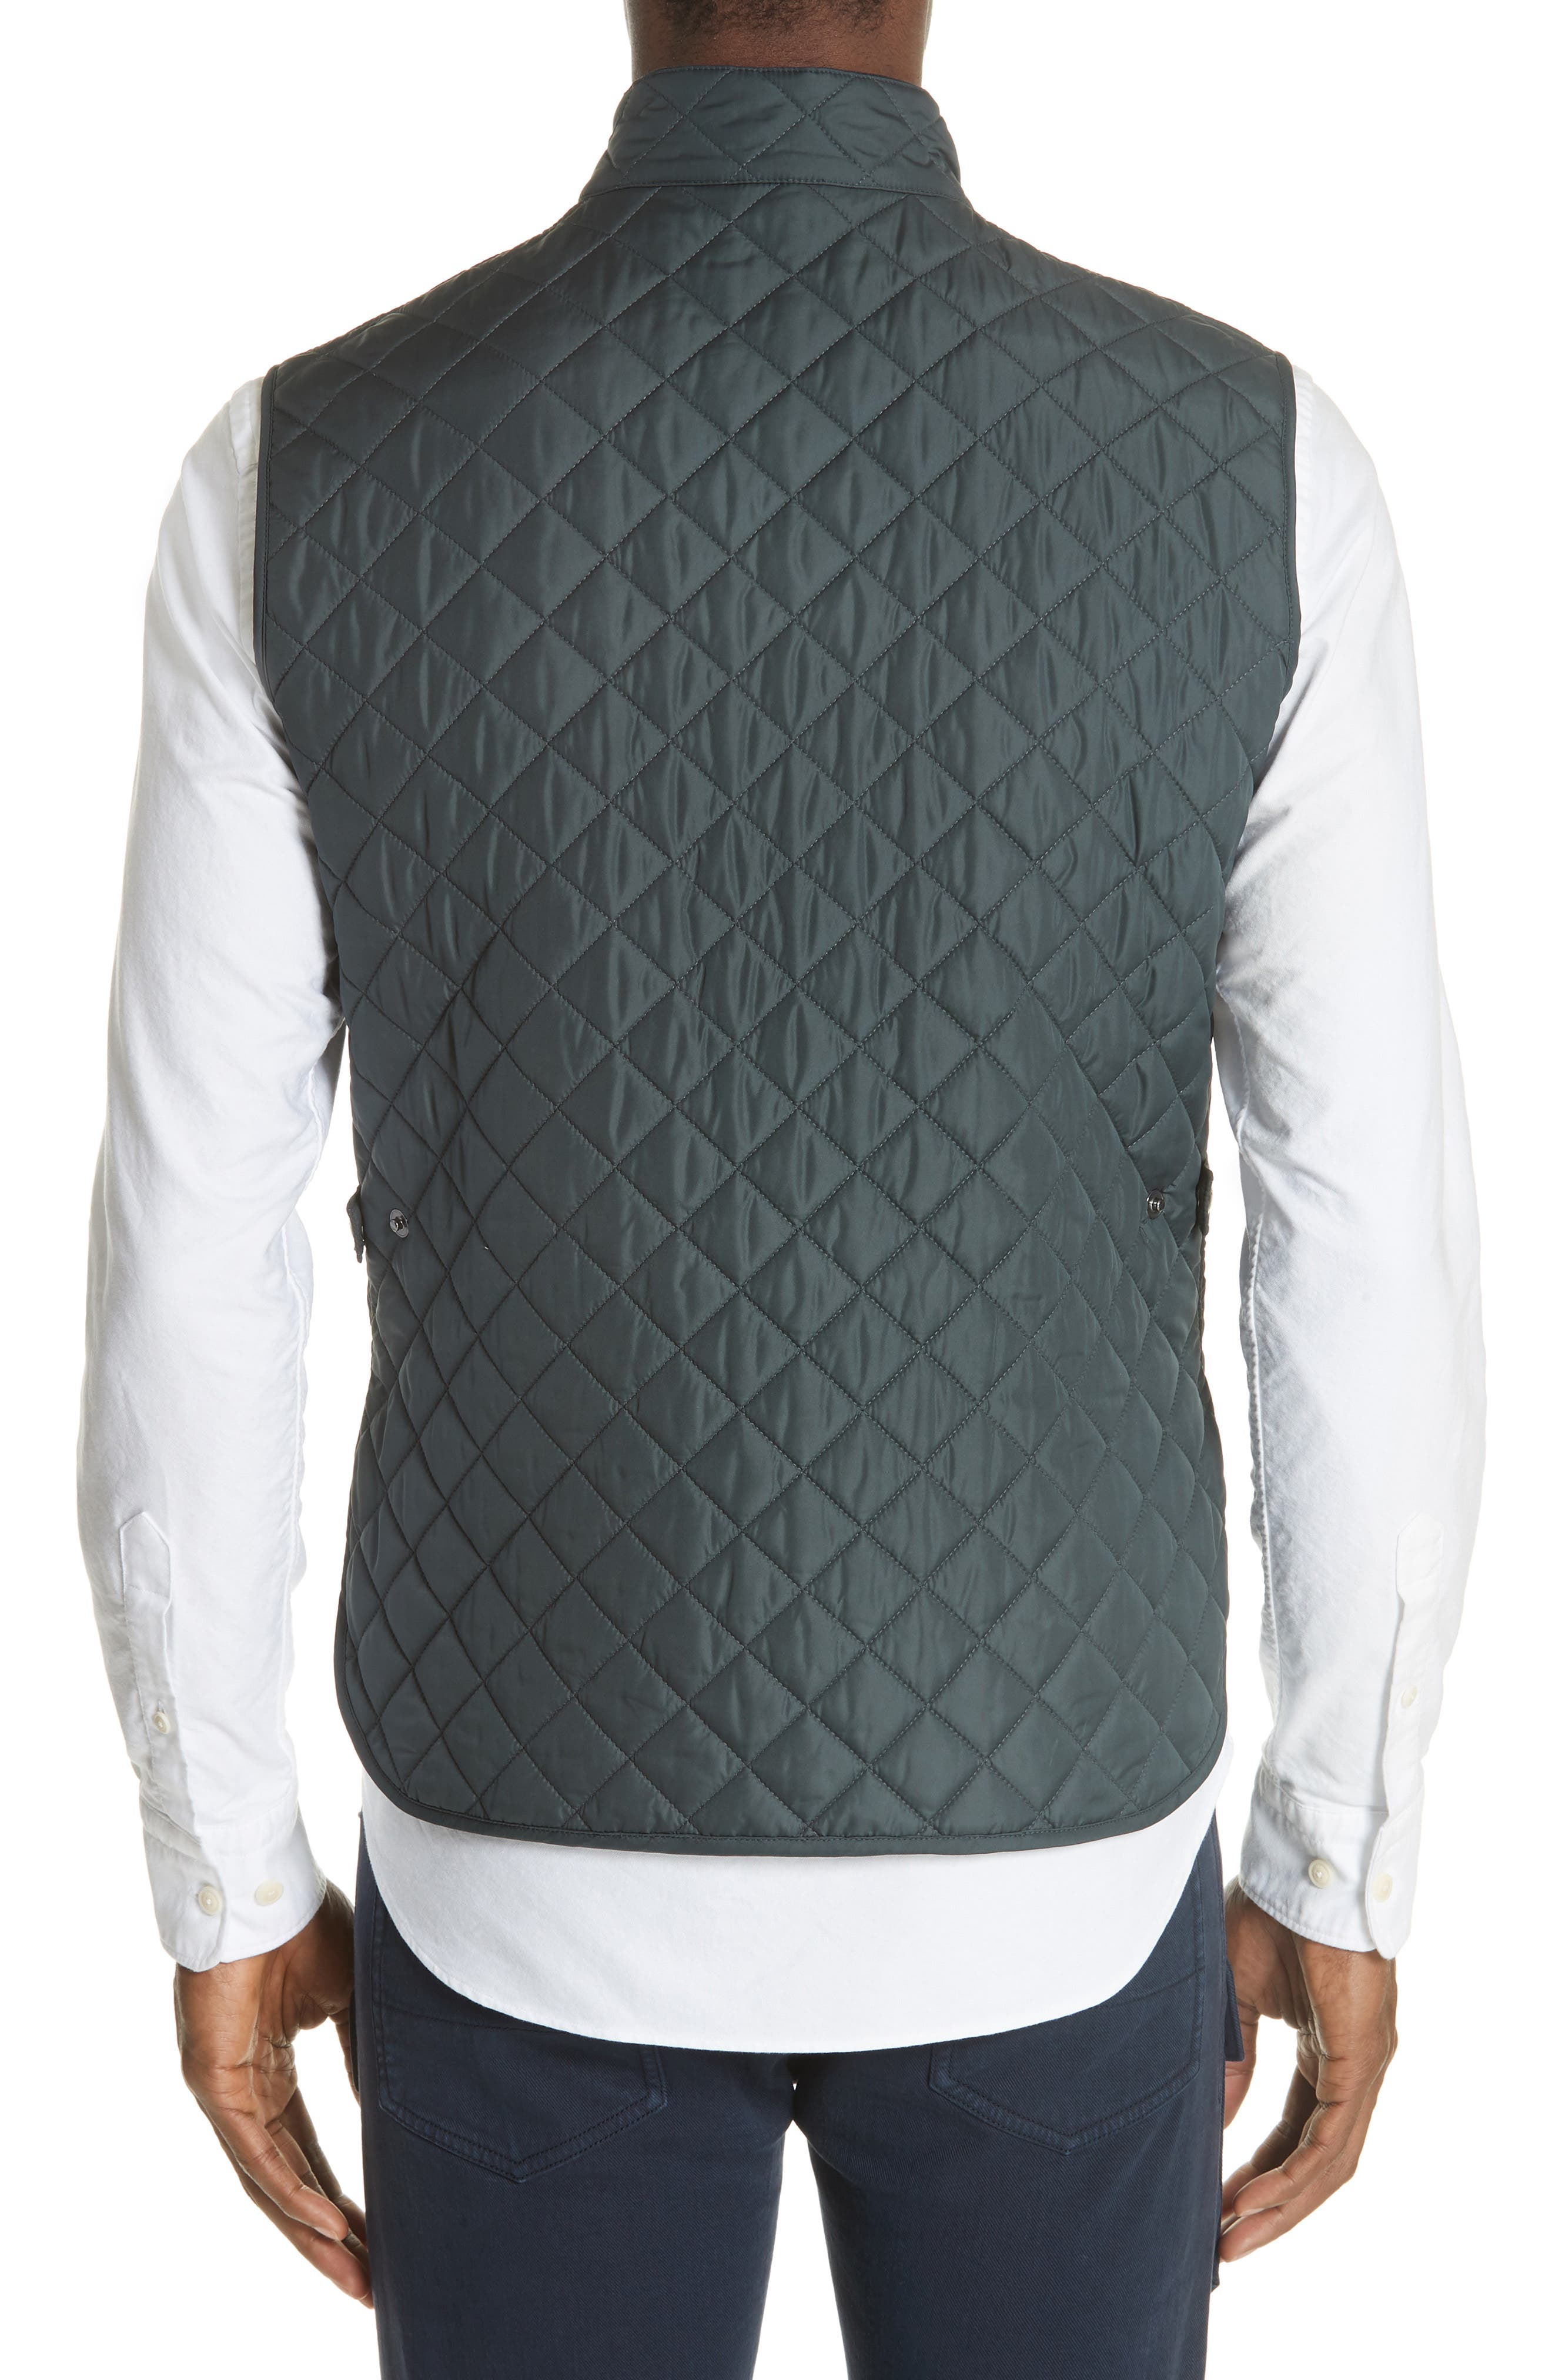 Waistcoat Tech Quilted Vest,                             Alternate thumbnail 2, color,                             400